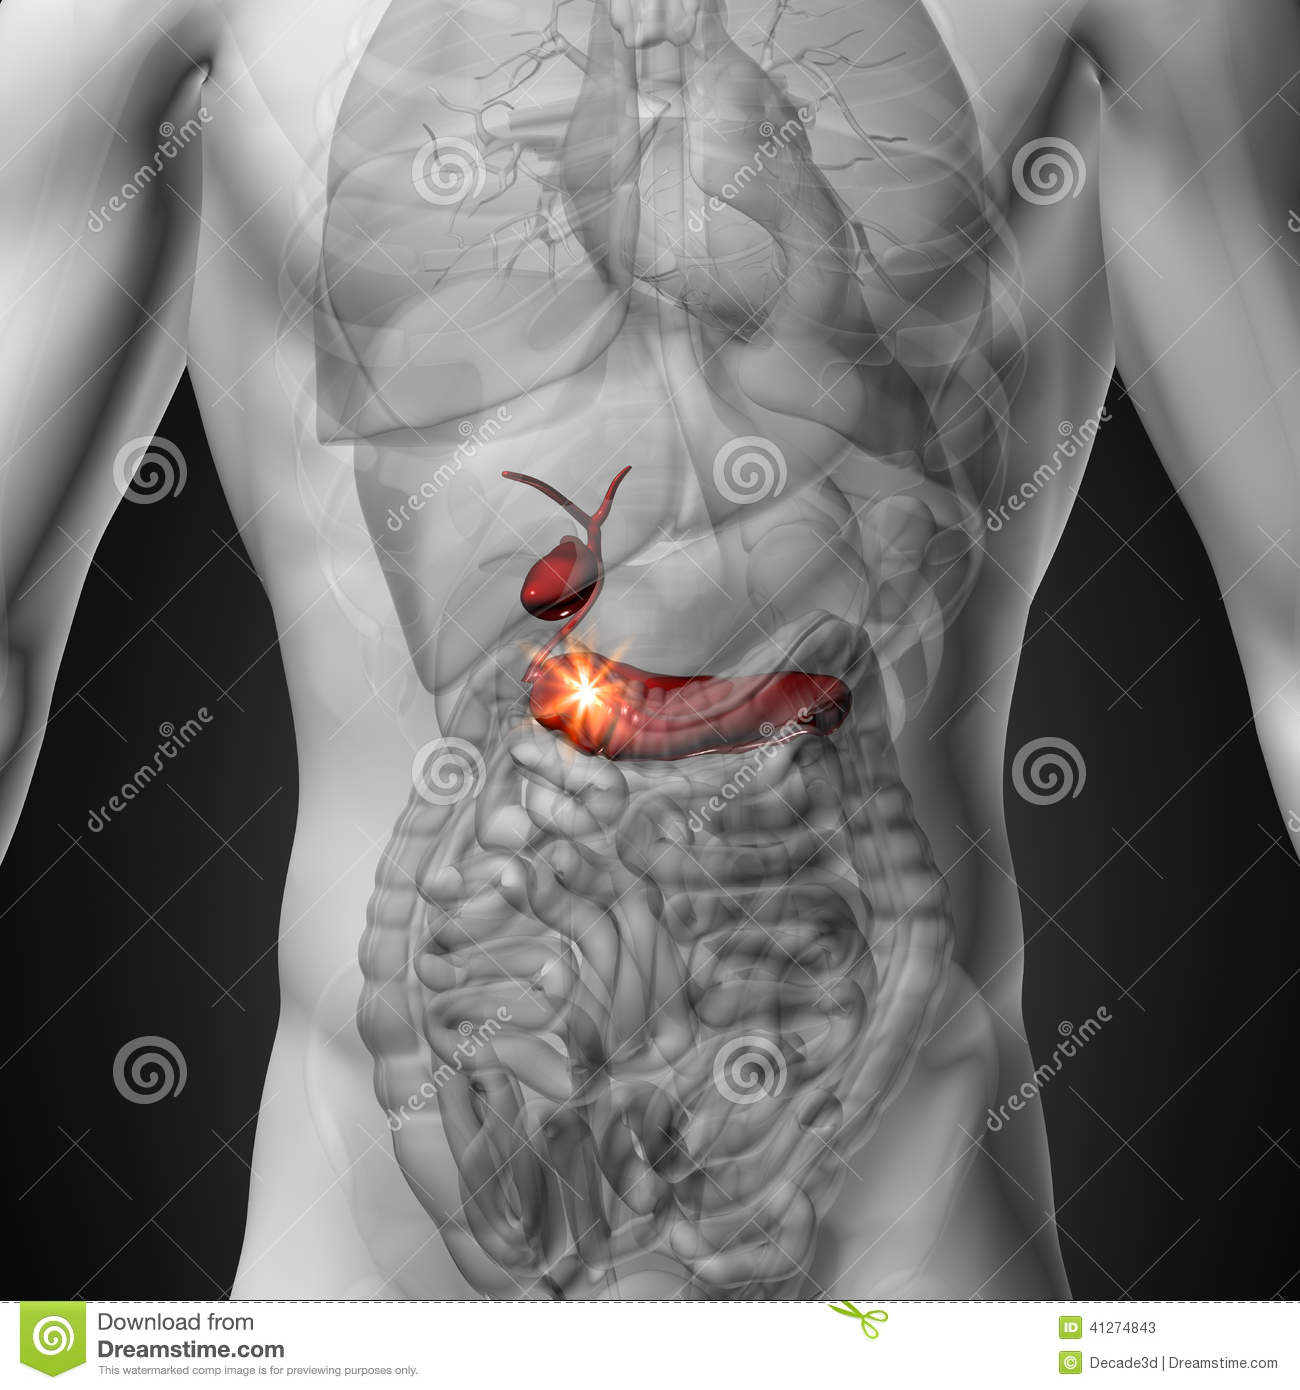 Gallbladder / Pancreas - Male Anatomy Of Human Organs - X-ray View ...